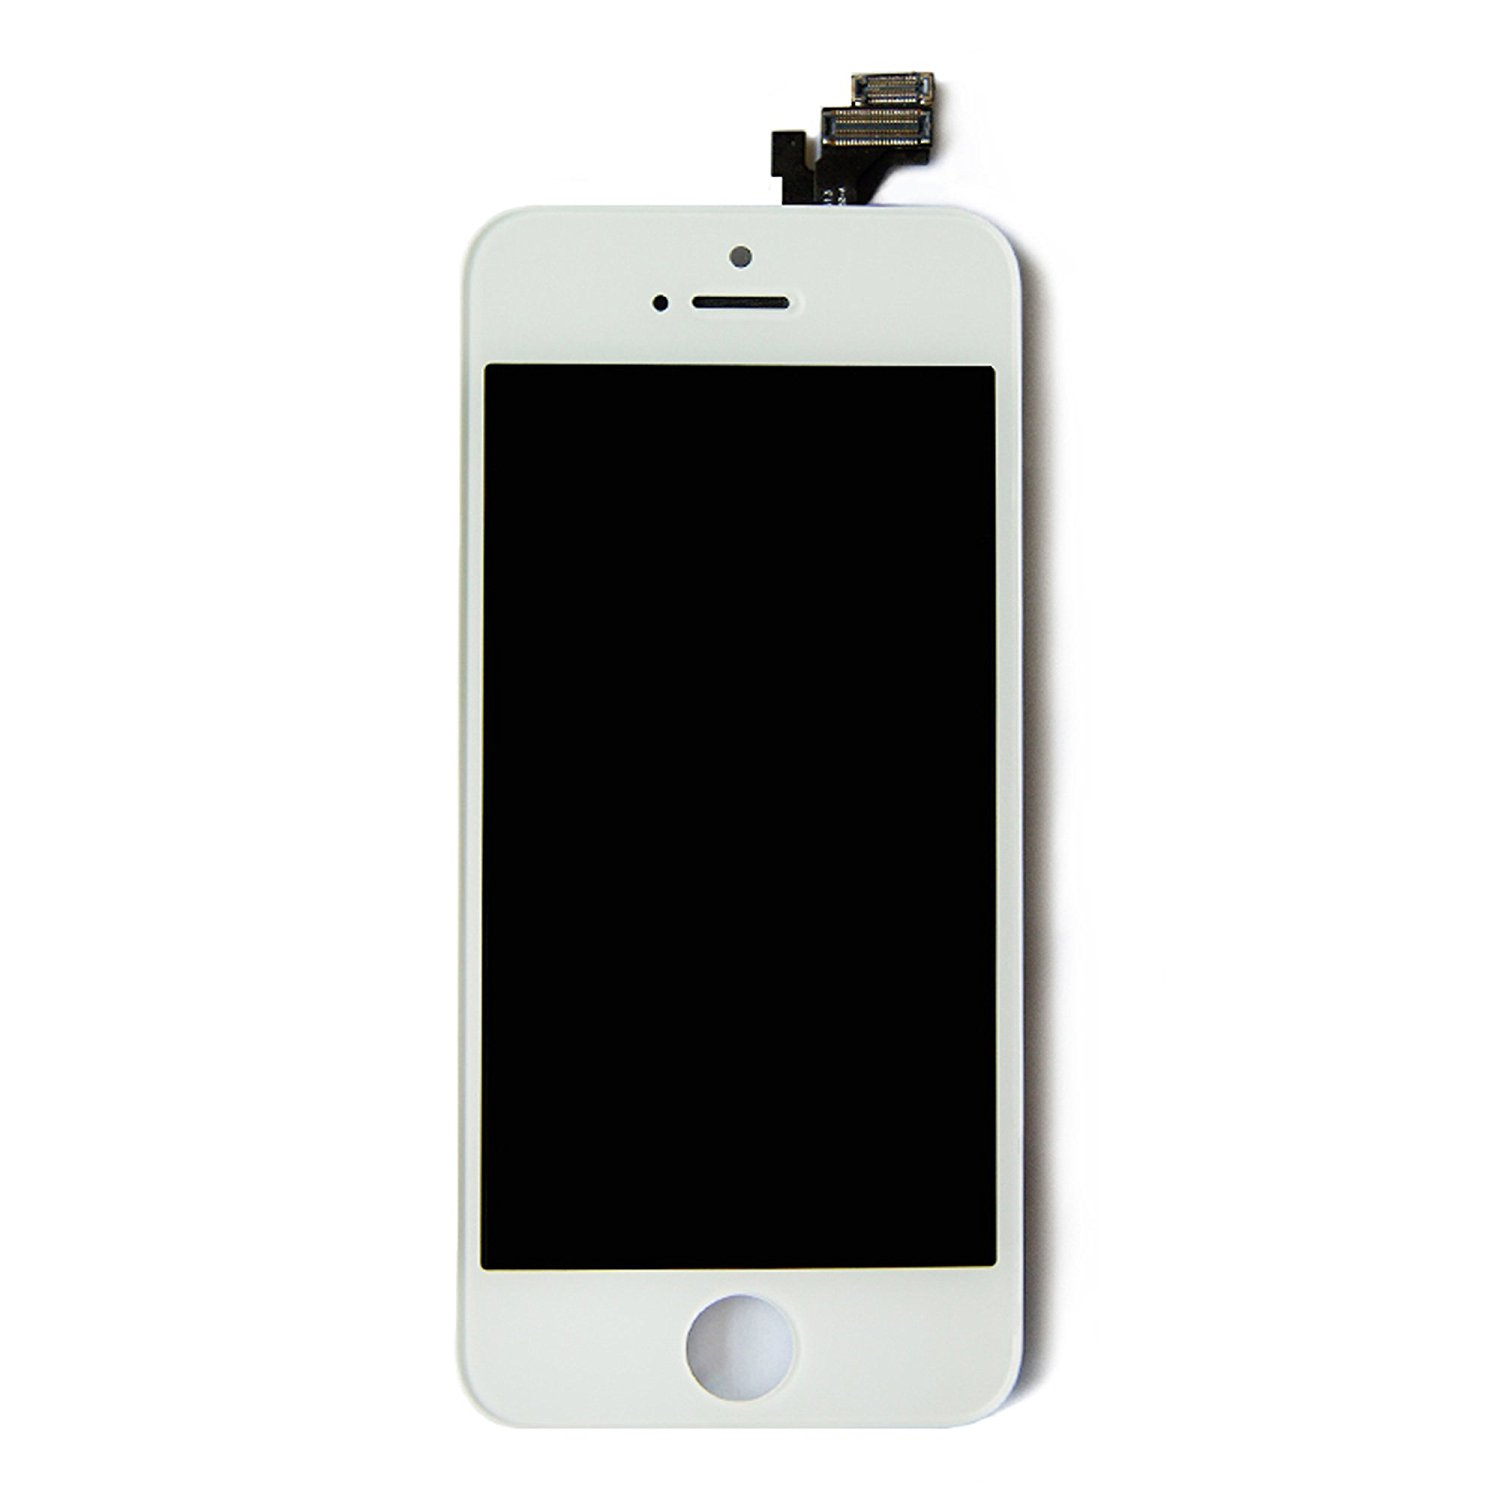 iphone 5 s screen replacement iphone 5 5g screen lcd display and touch glass digitizer 2040